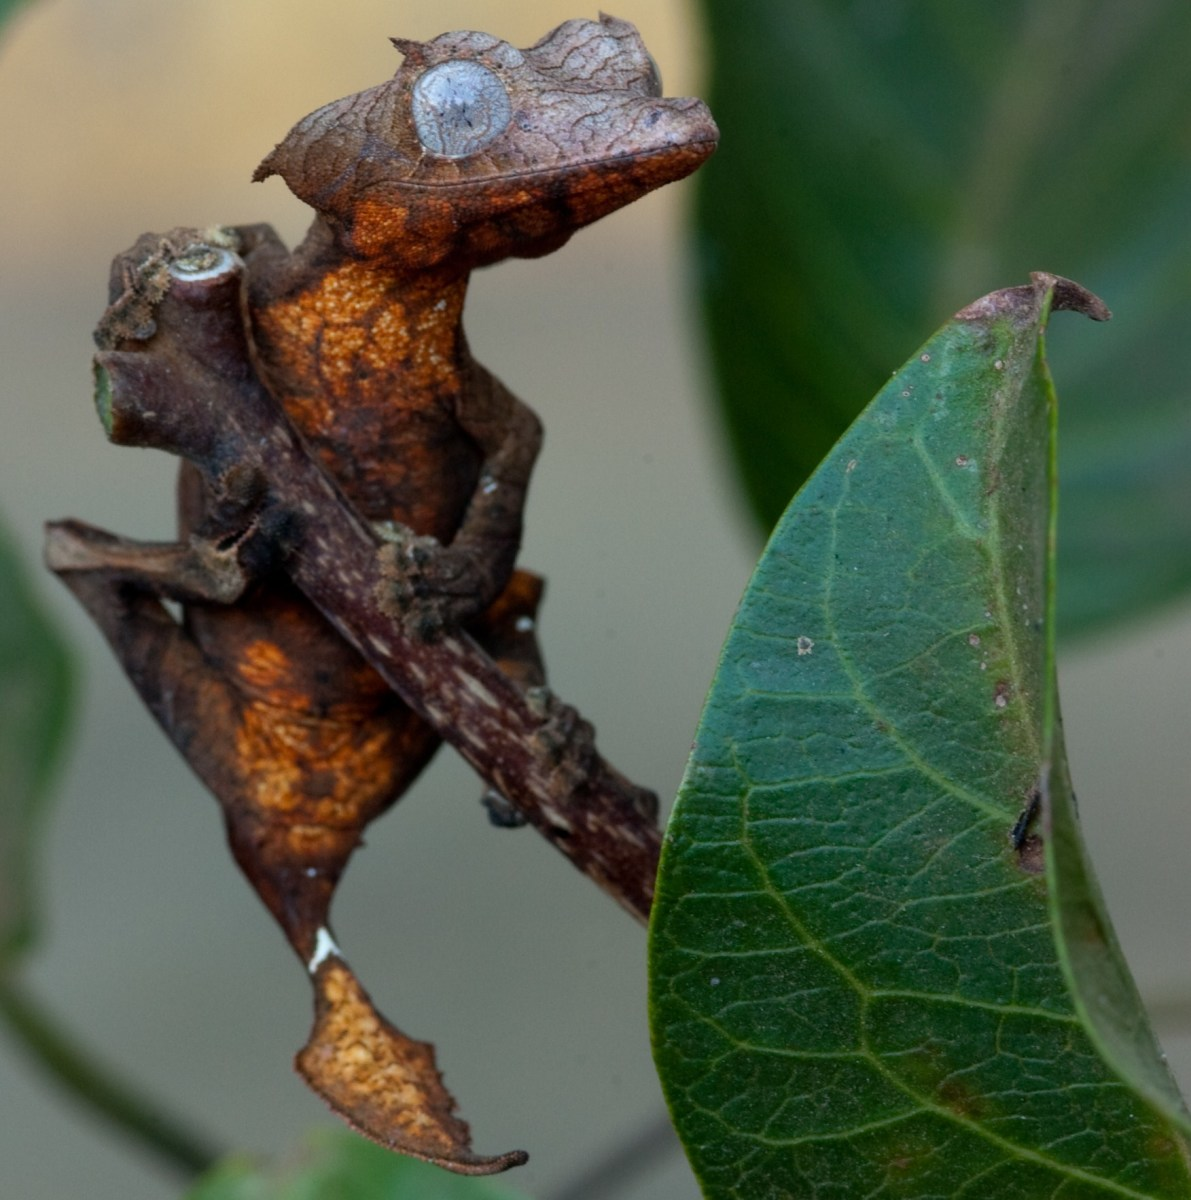 Lizards: The Leaf-Tailed Gecko